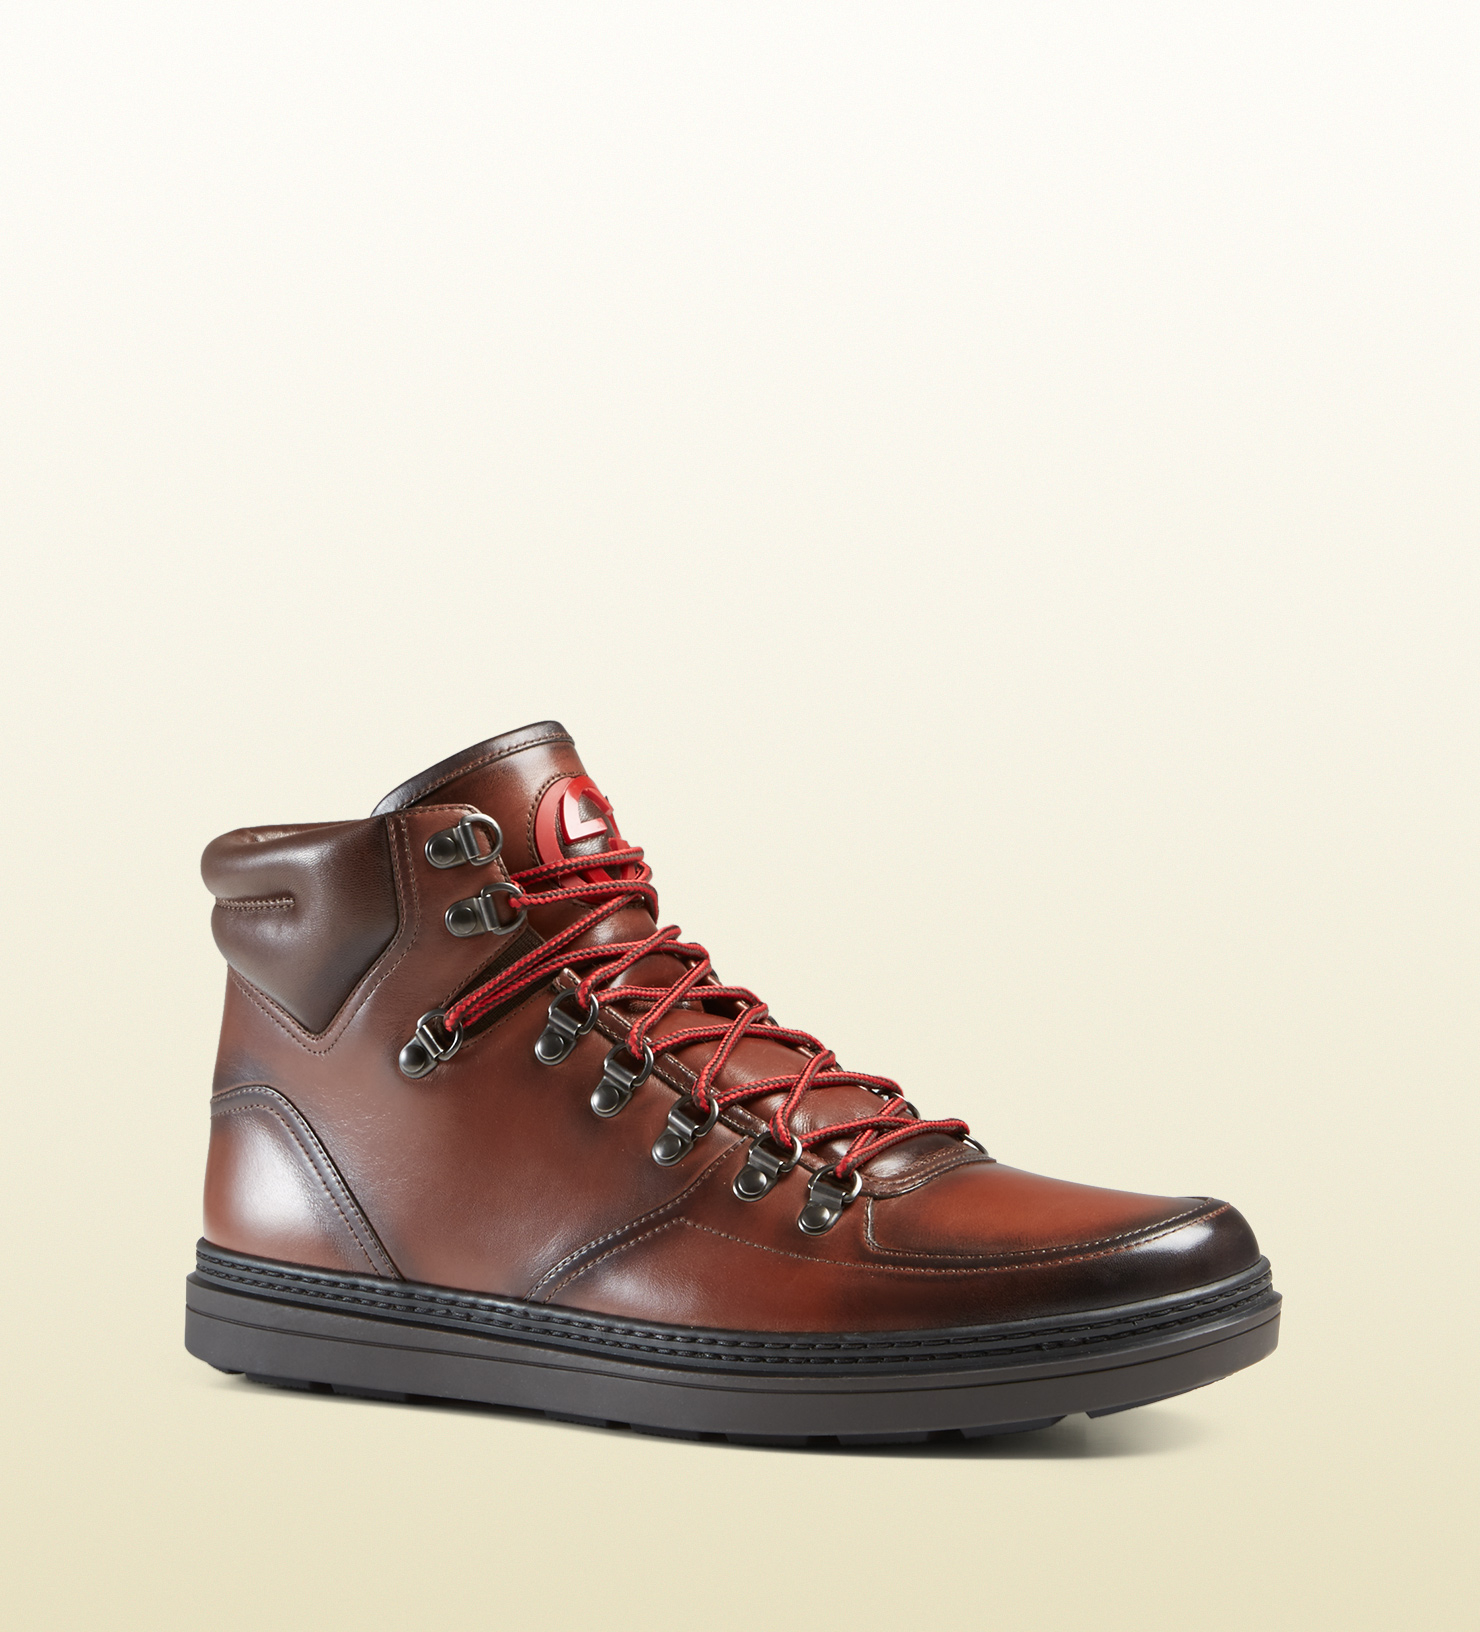 d5bec988b Cozy Lyst Gucci Leather Trekking Boot In Brown For Men - Ivoiregion